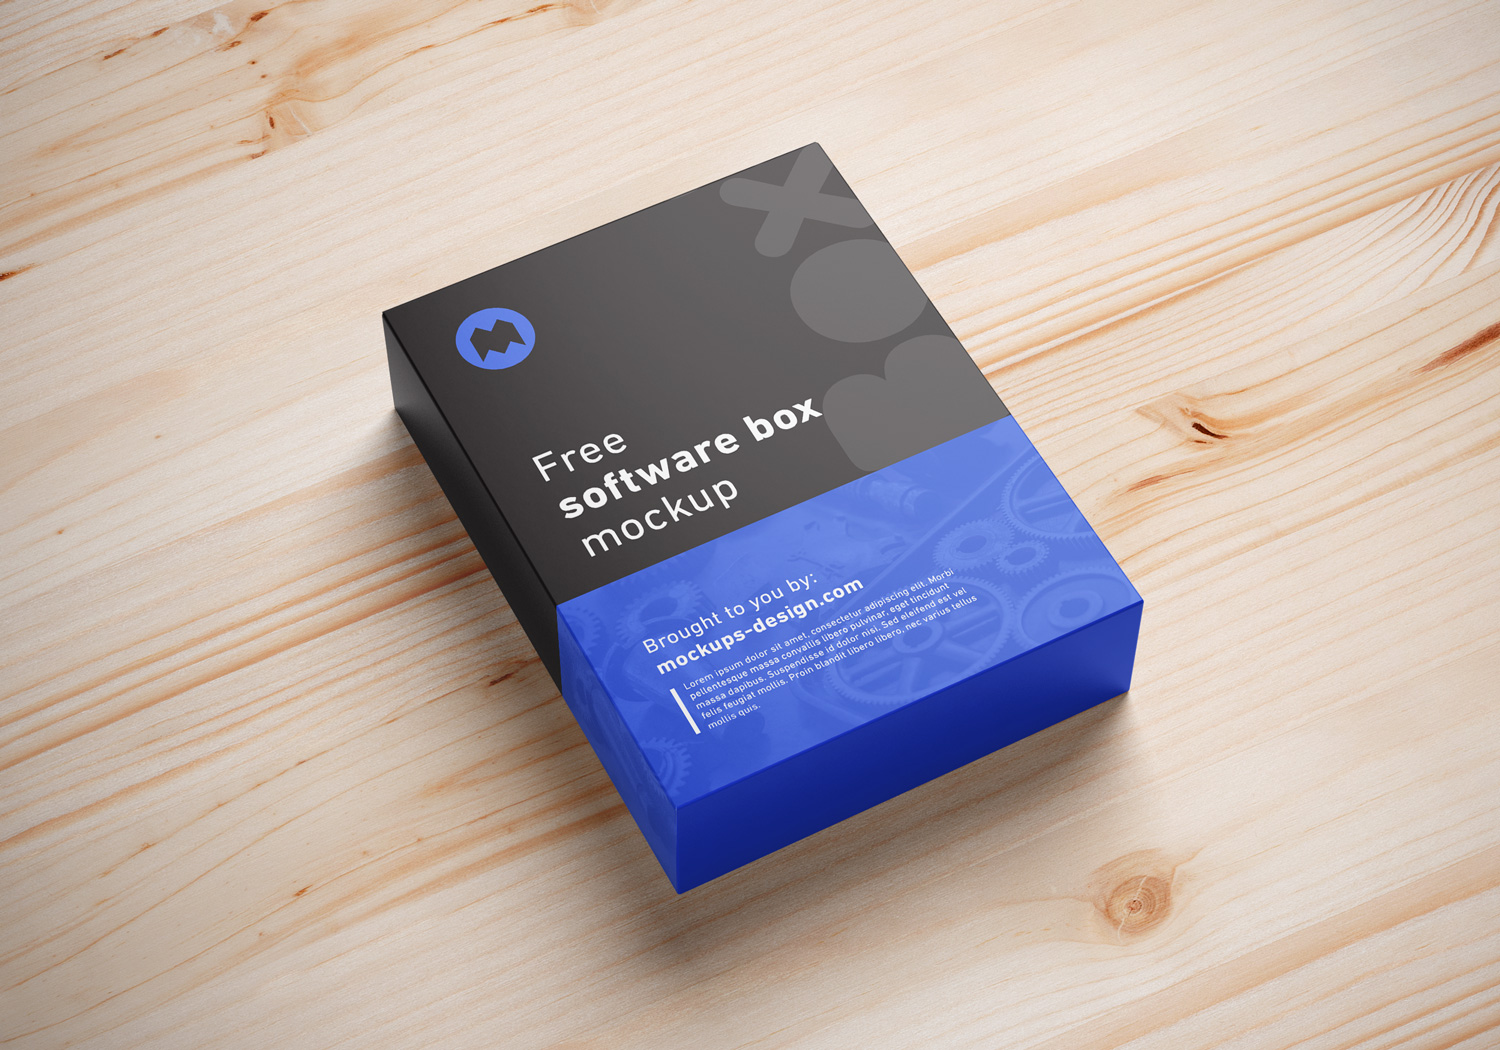 Free-Software-Box-Mockup-04